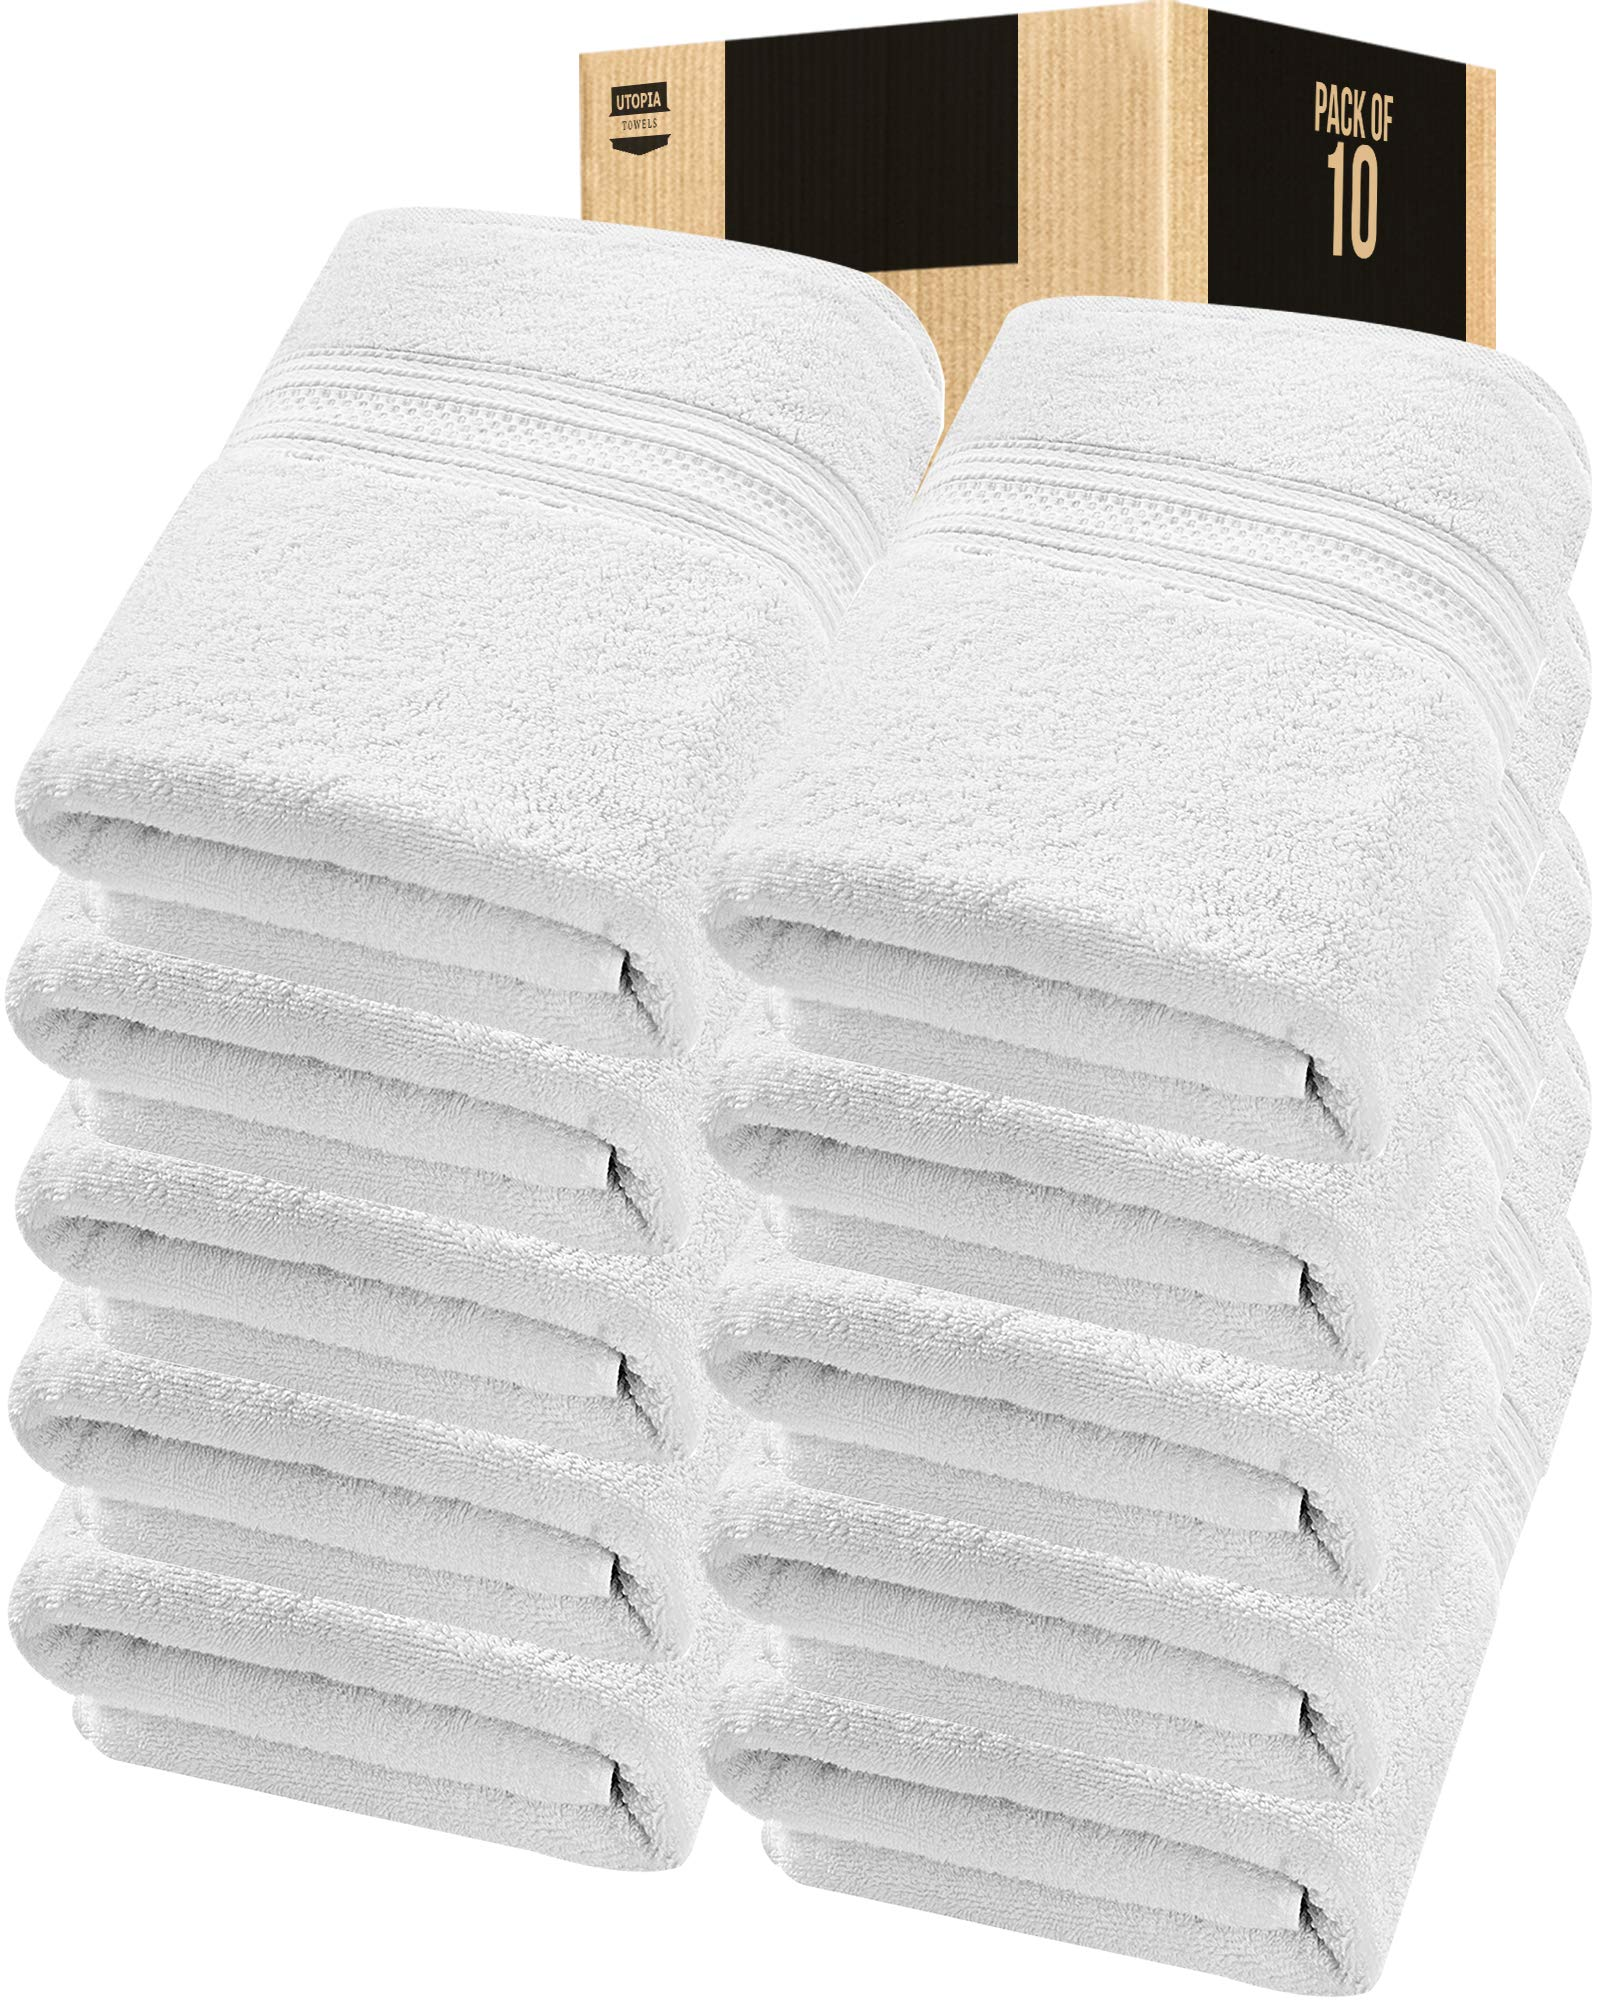 Utopia Towels 10 Pack 700 GSM Extra Large Bath Towels Bulk (35 x 70 Inches) Soft Luxury Bath Sheet, White